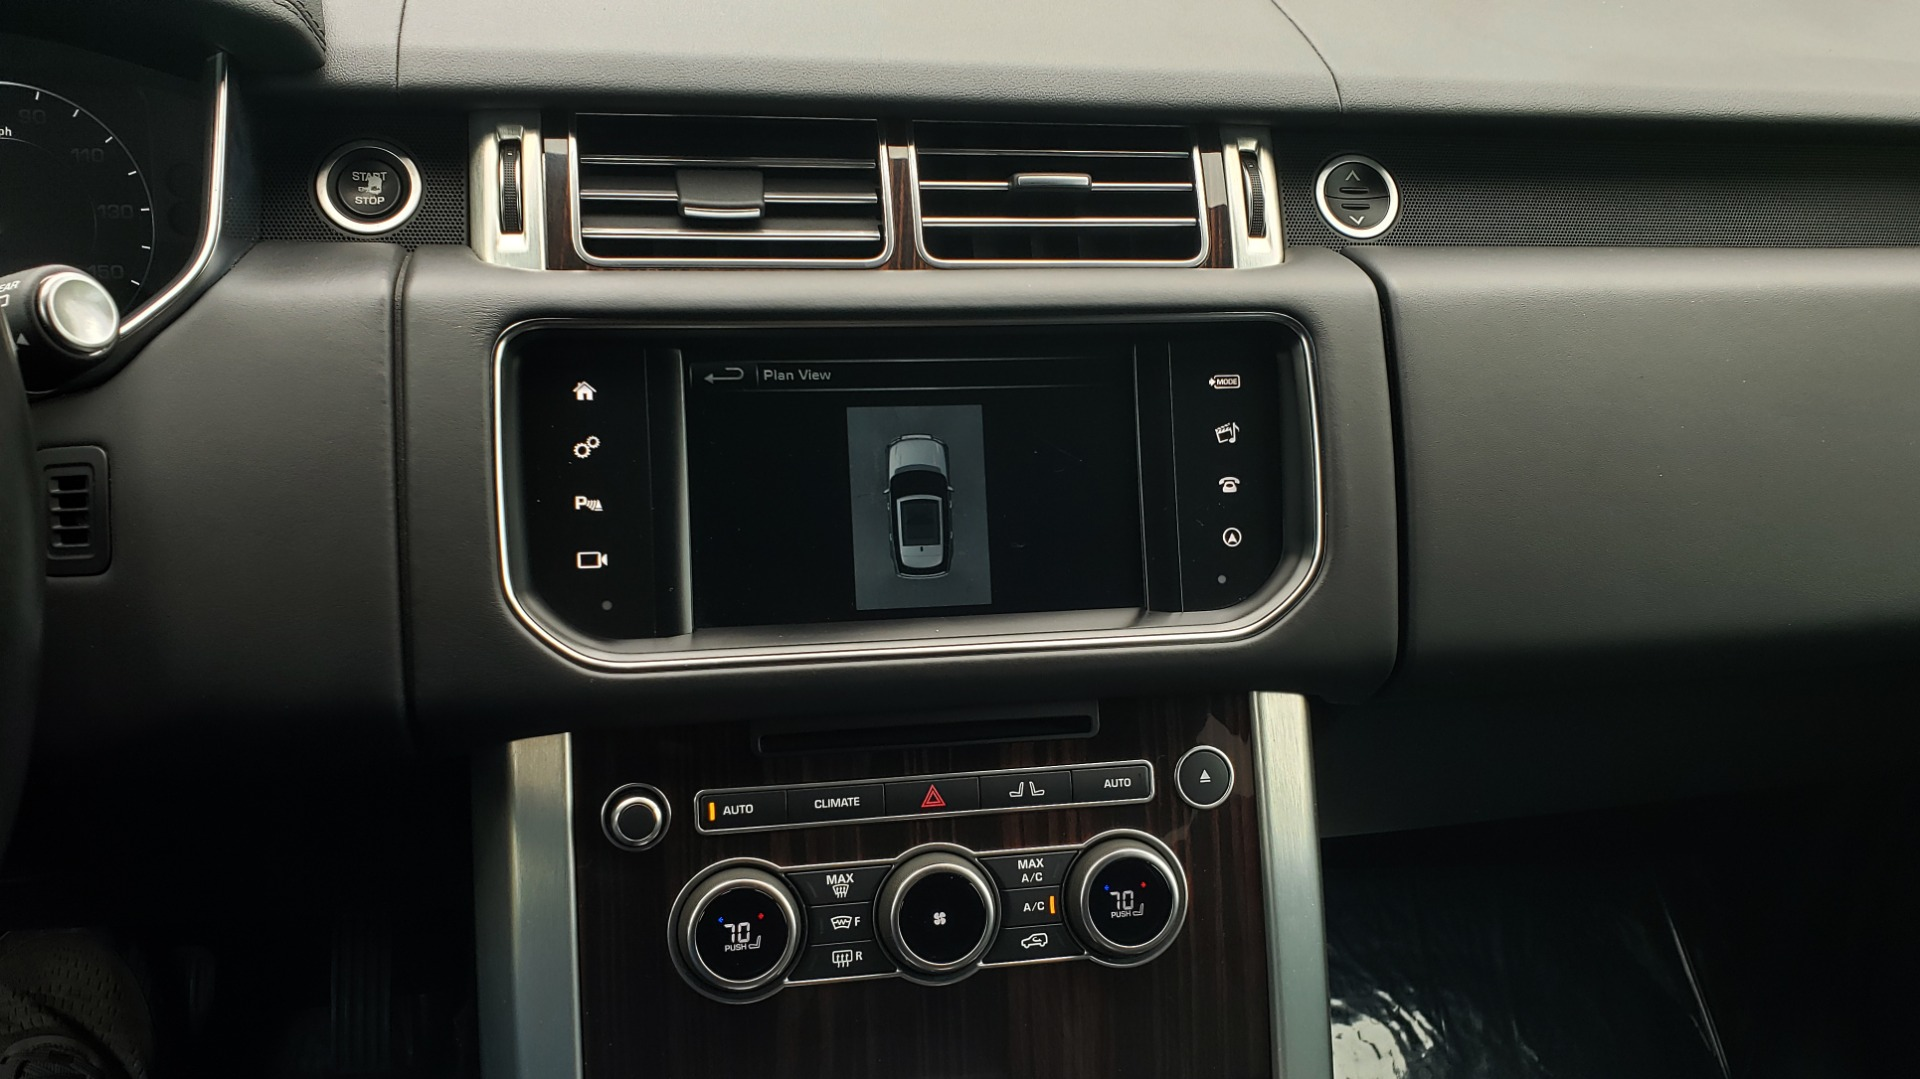 Used 2016 Land Rover Range Rover HSE 3.0L SC V6 / NAV / PANO-ROOF / VENT SEATS / REARVIEW / BLIND SPOT for sale Sold at Formula Imports in Charlotte NC 28227 51